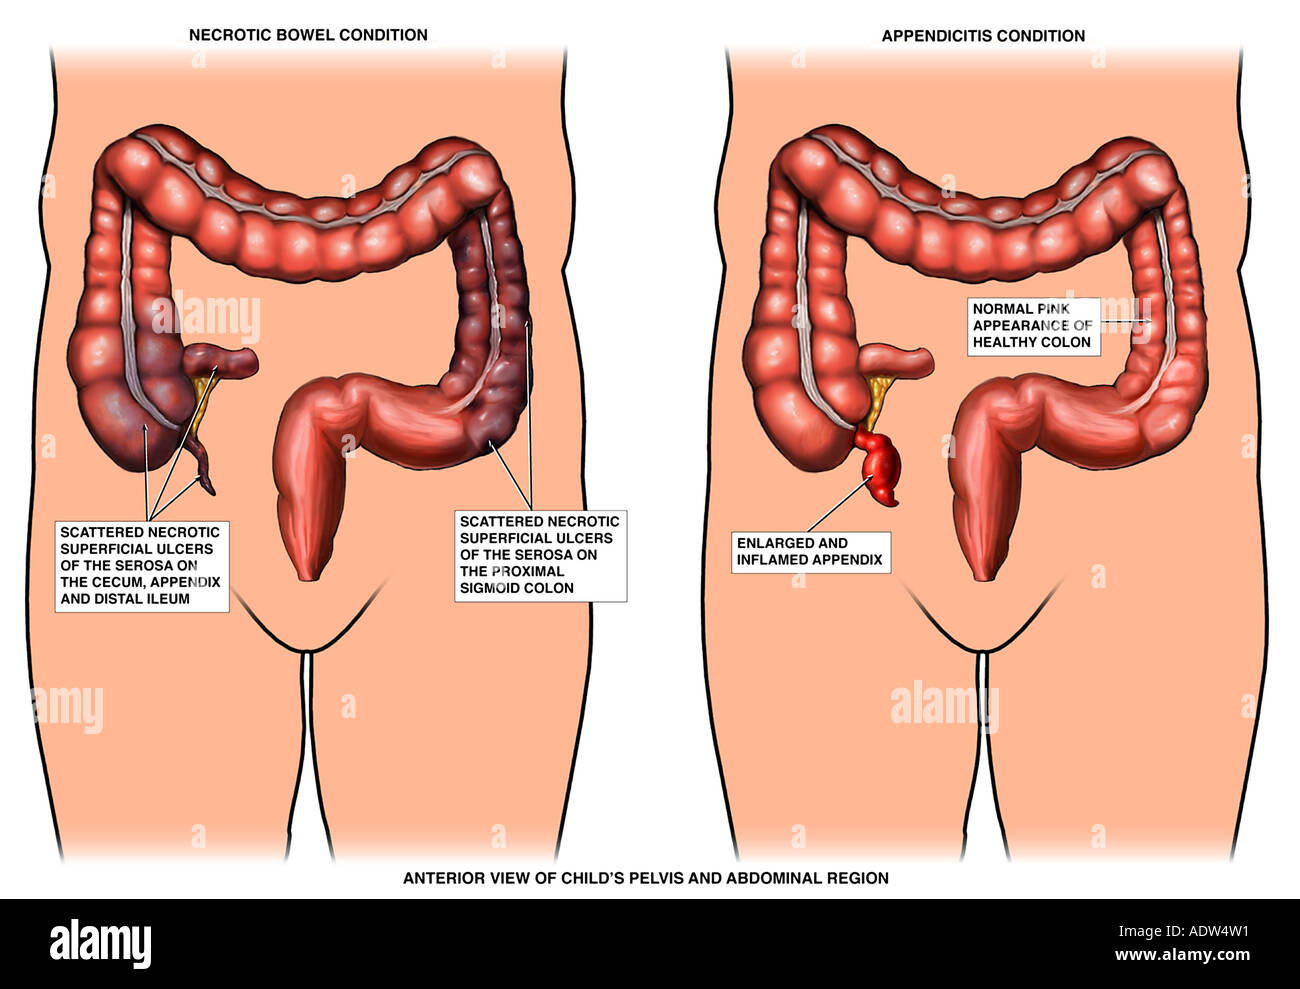 hight resolution of appendicitis inflamed appendix